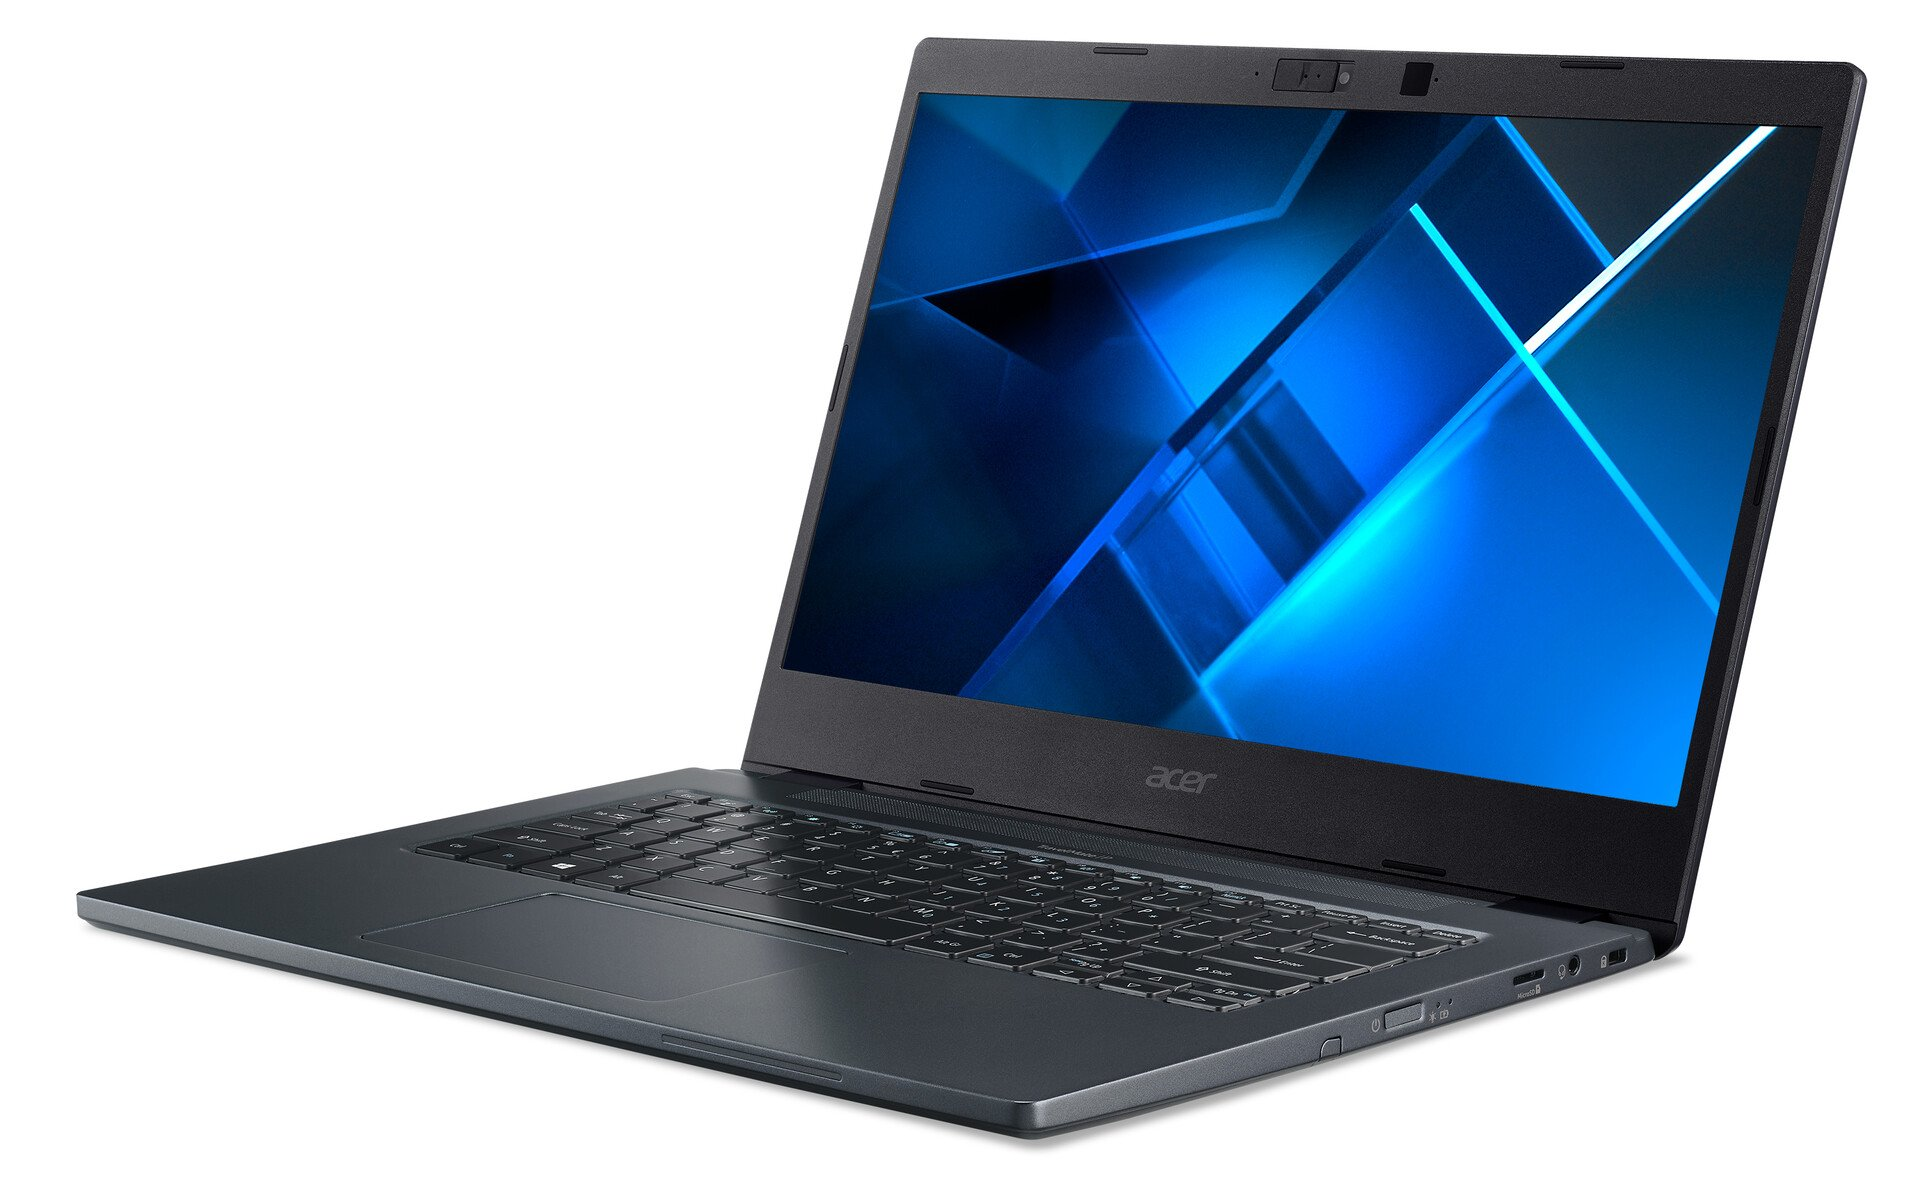 The Acer TravelMate Spin P4 review